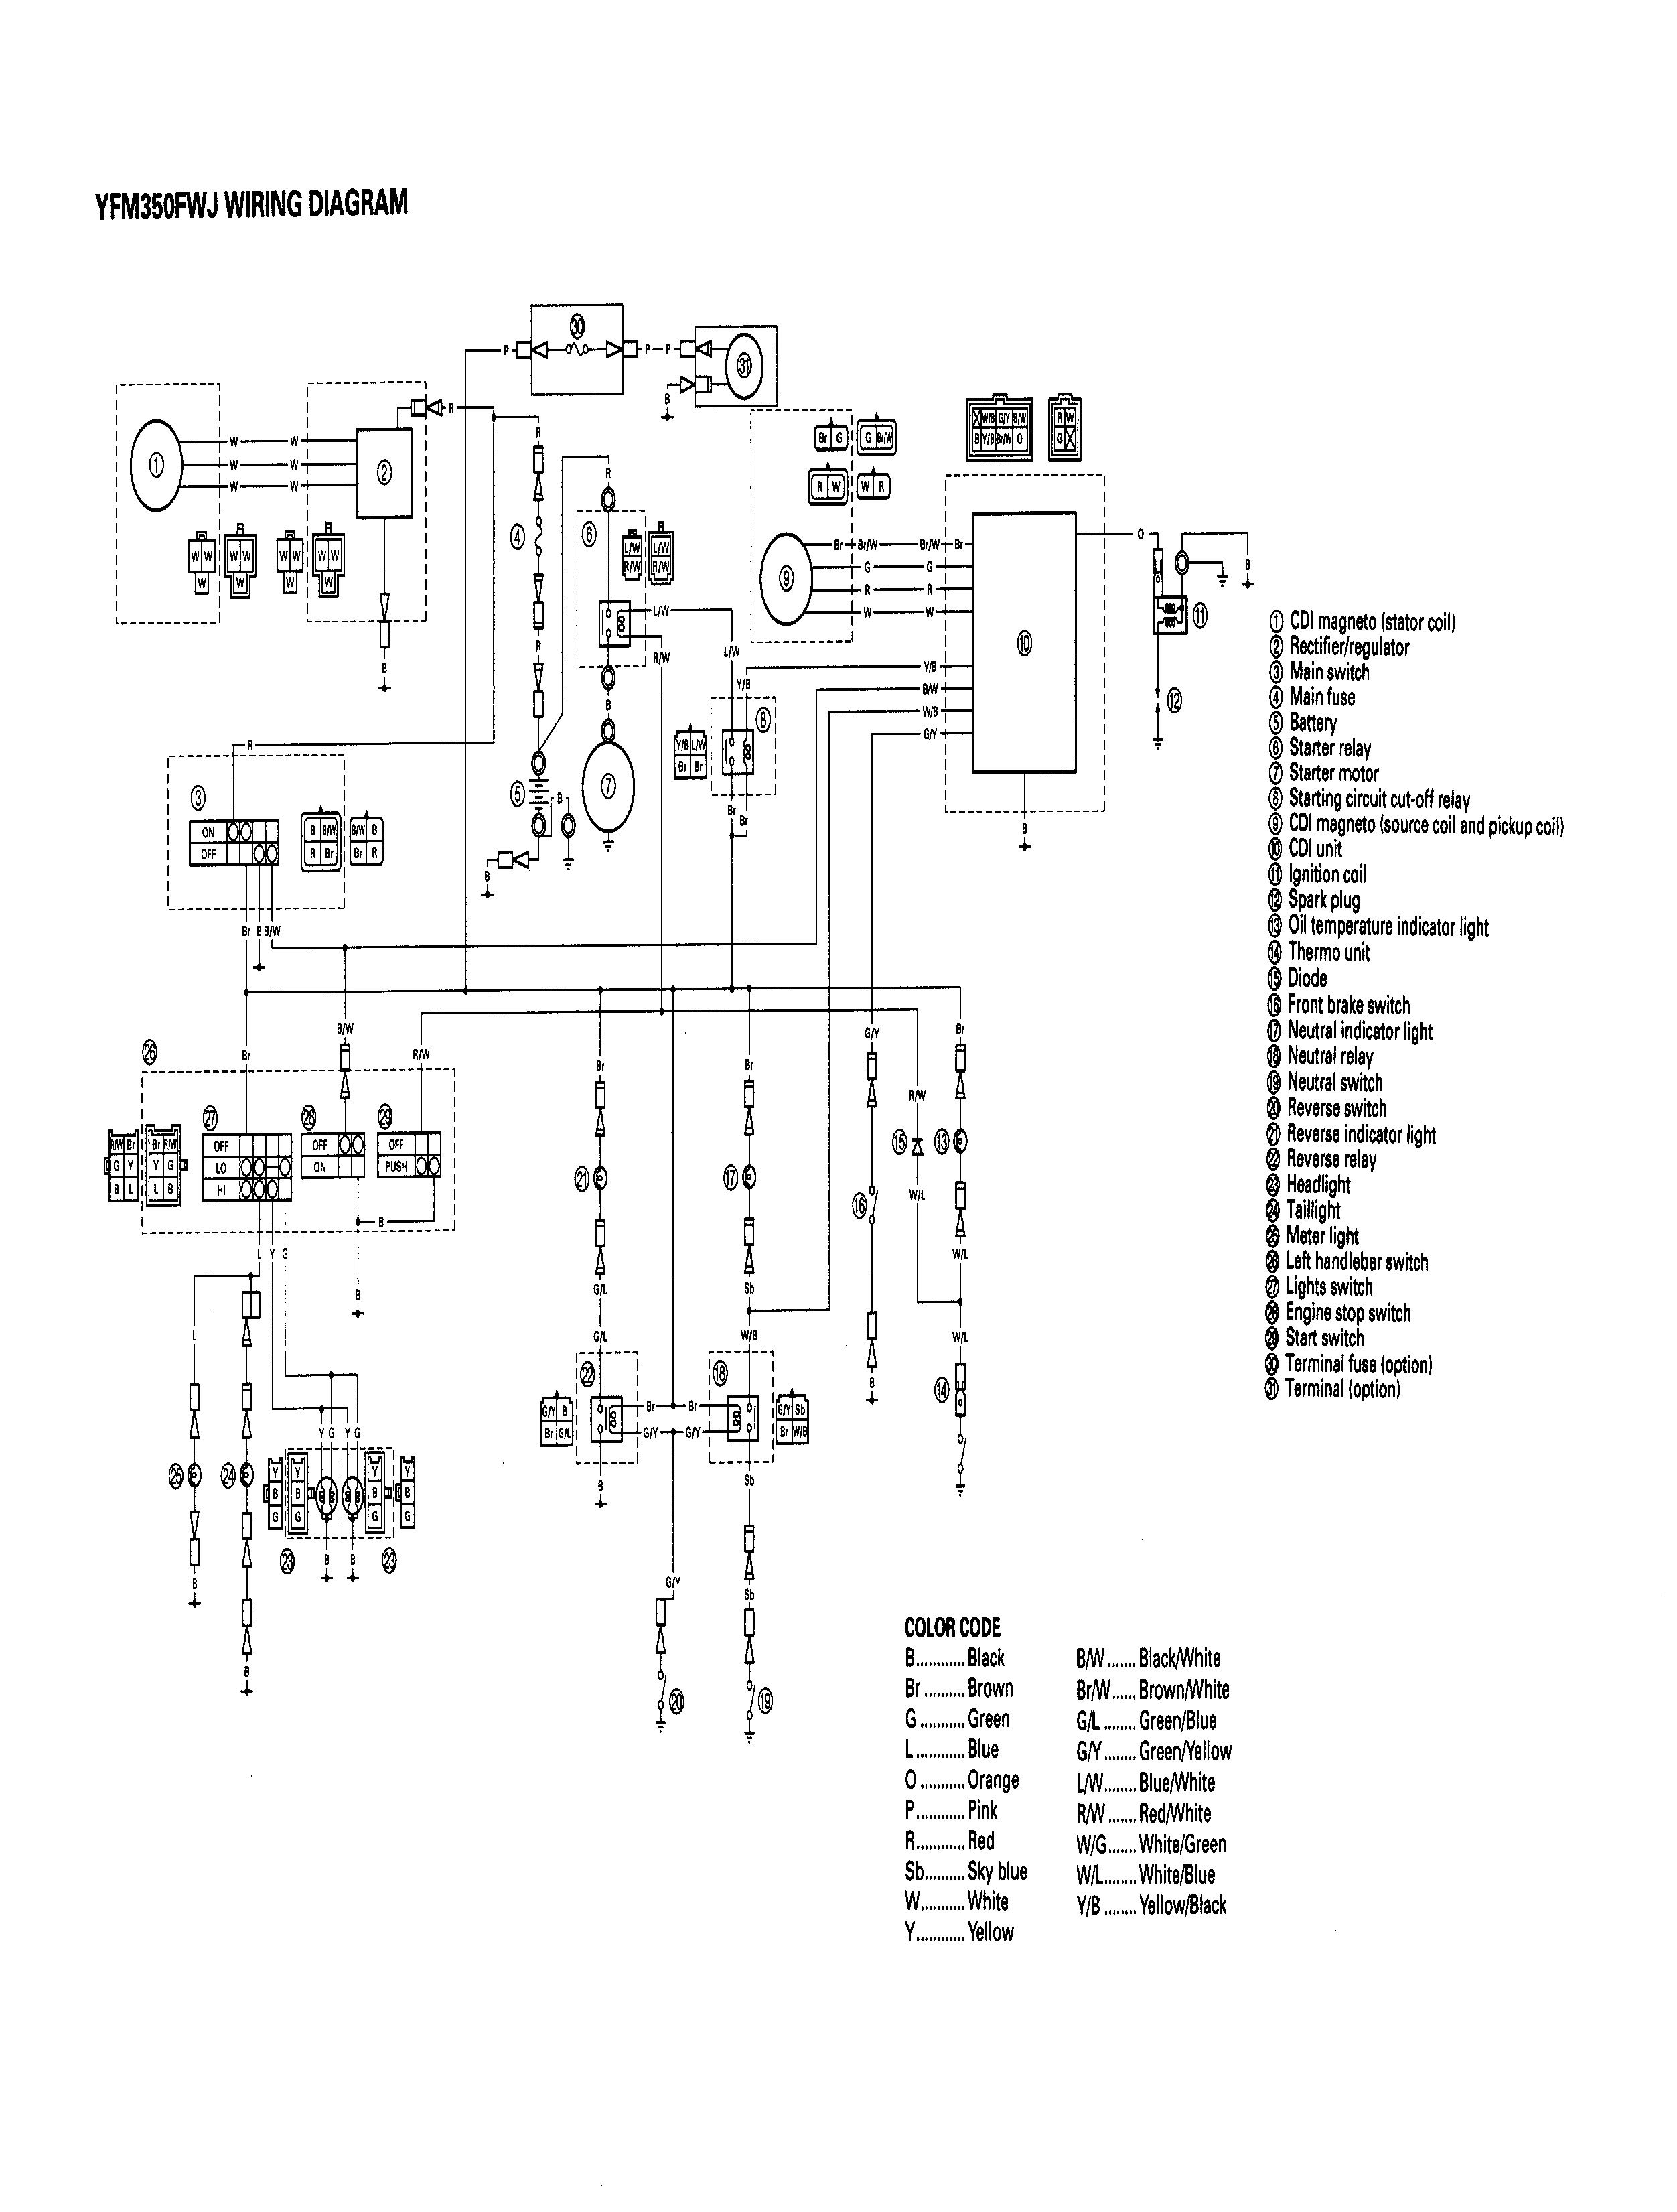 4 wire key switch wiring diagram